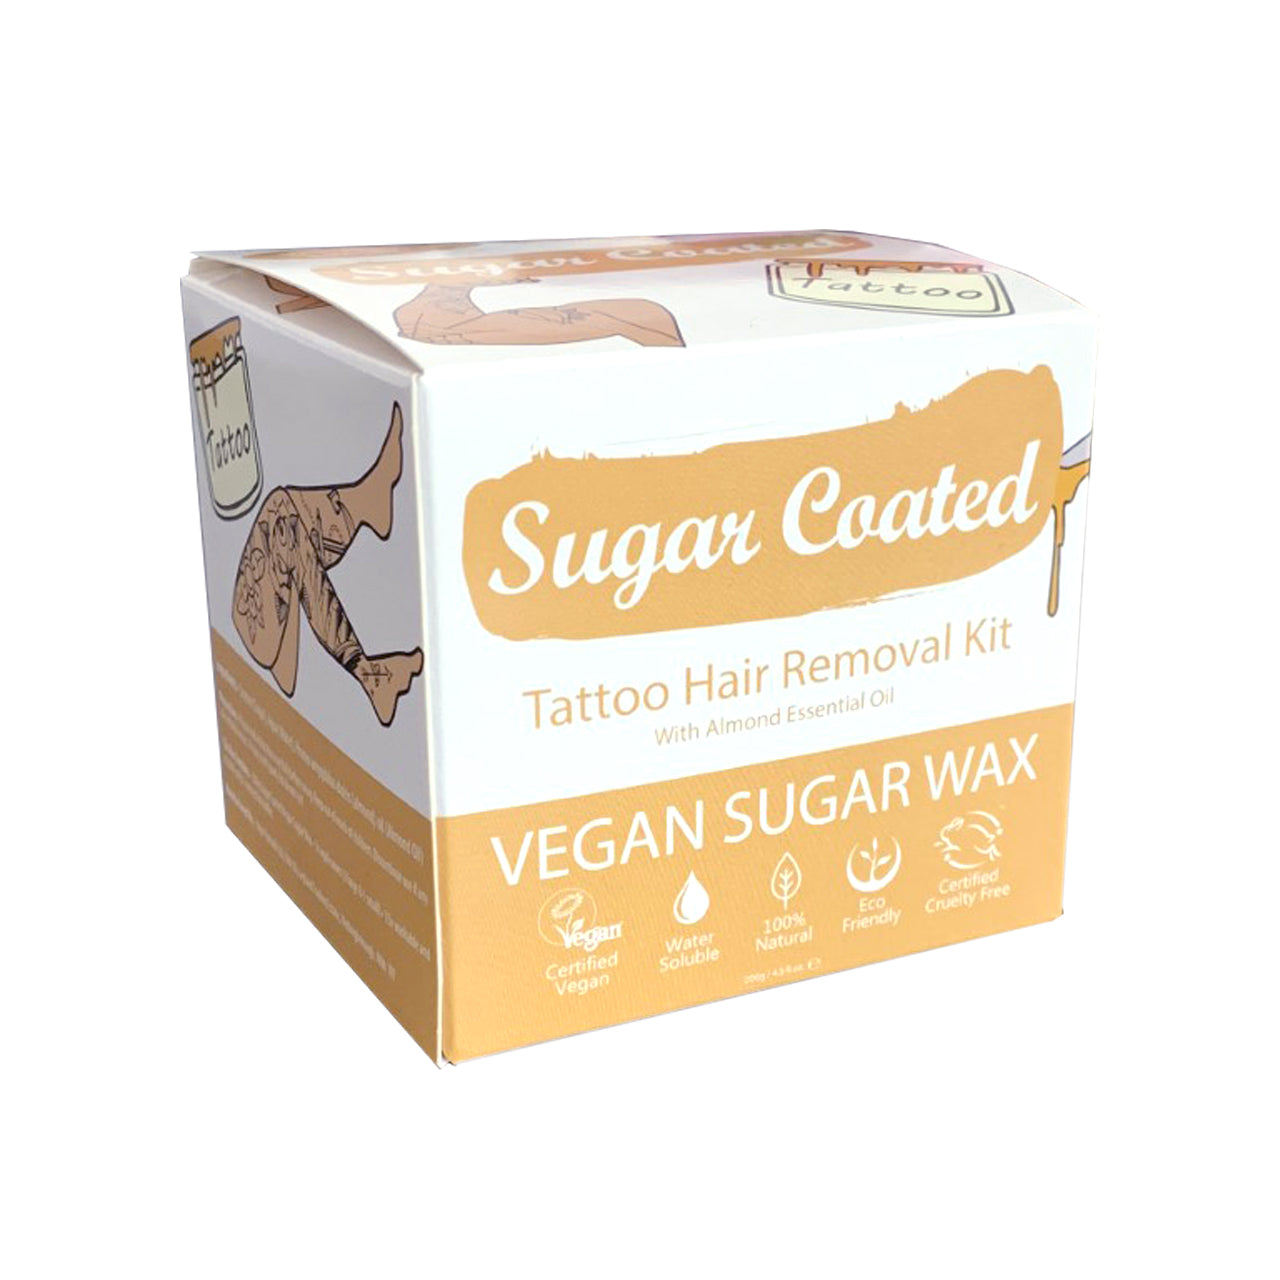 Sugar Coated Tattoo almond coloured box angled view with icons showing: Vegan, water-soluble, natural, eco-friendly, cruelty-free